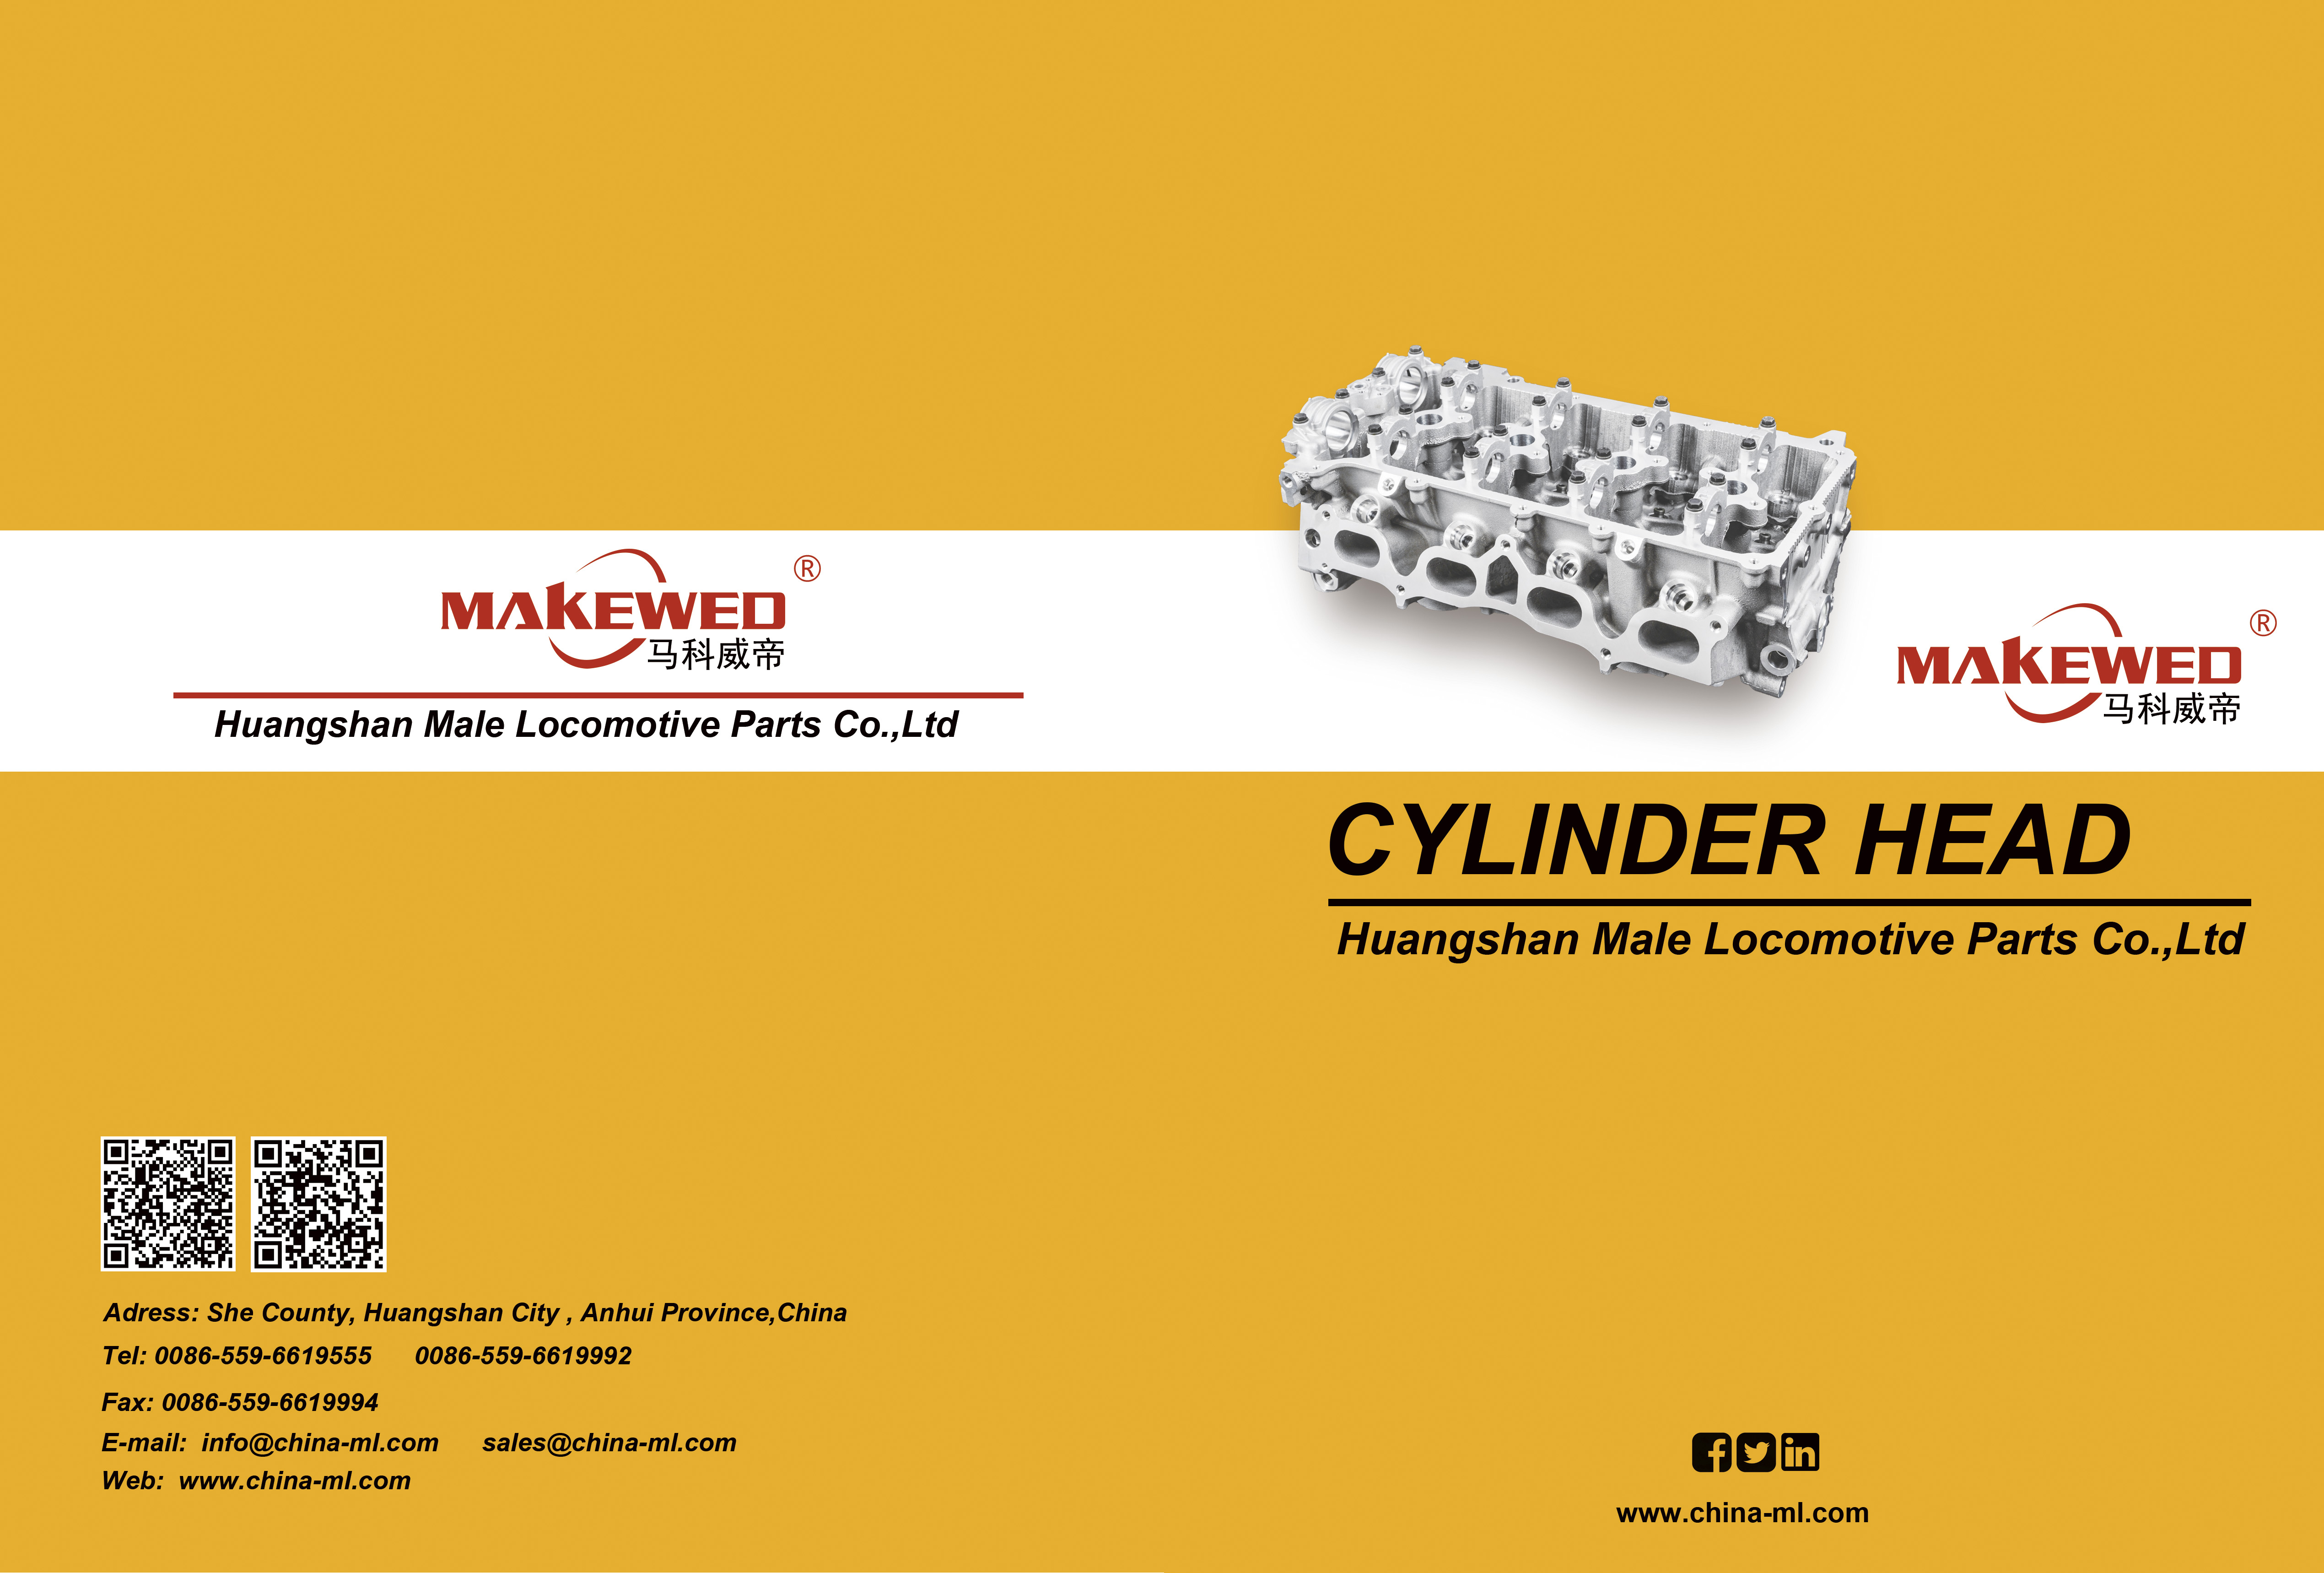 E-catalogue_Huangshan Male Locomotive Parts Co.,Ltd. Parts